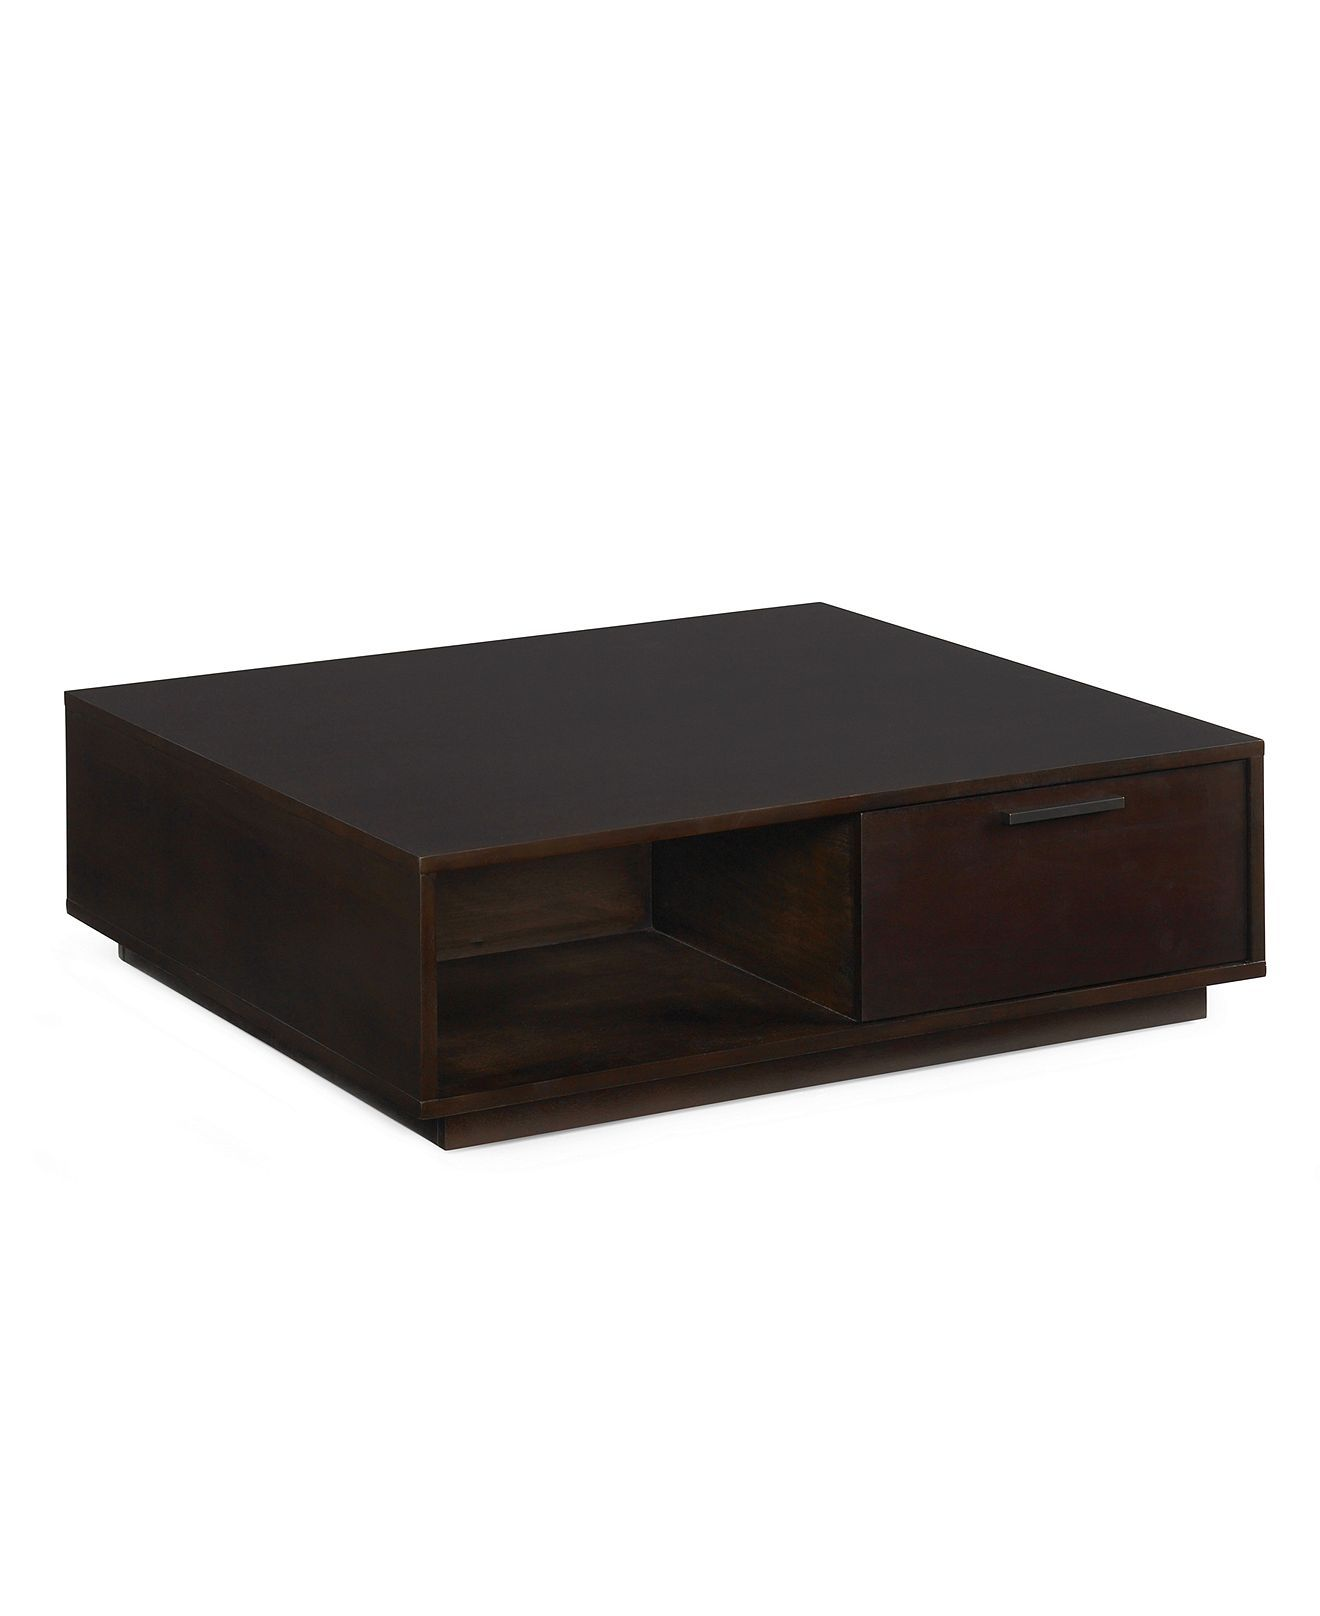 Tahoe Noir Table Coffee Furniture Macy S